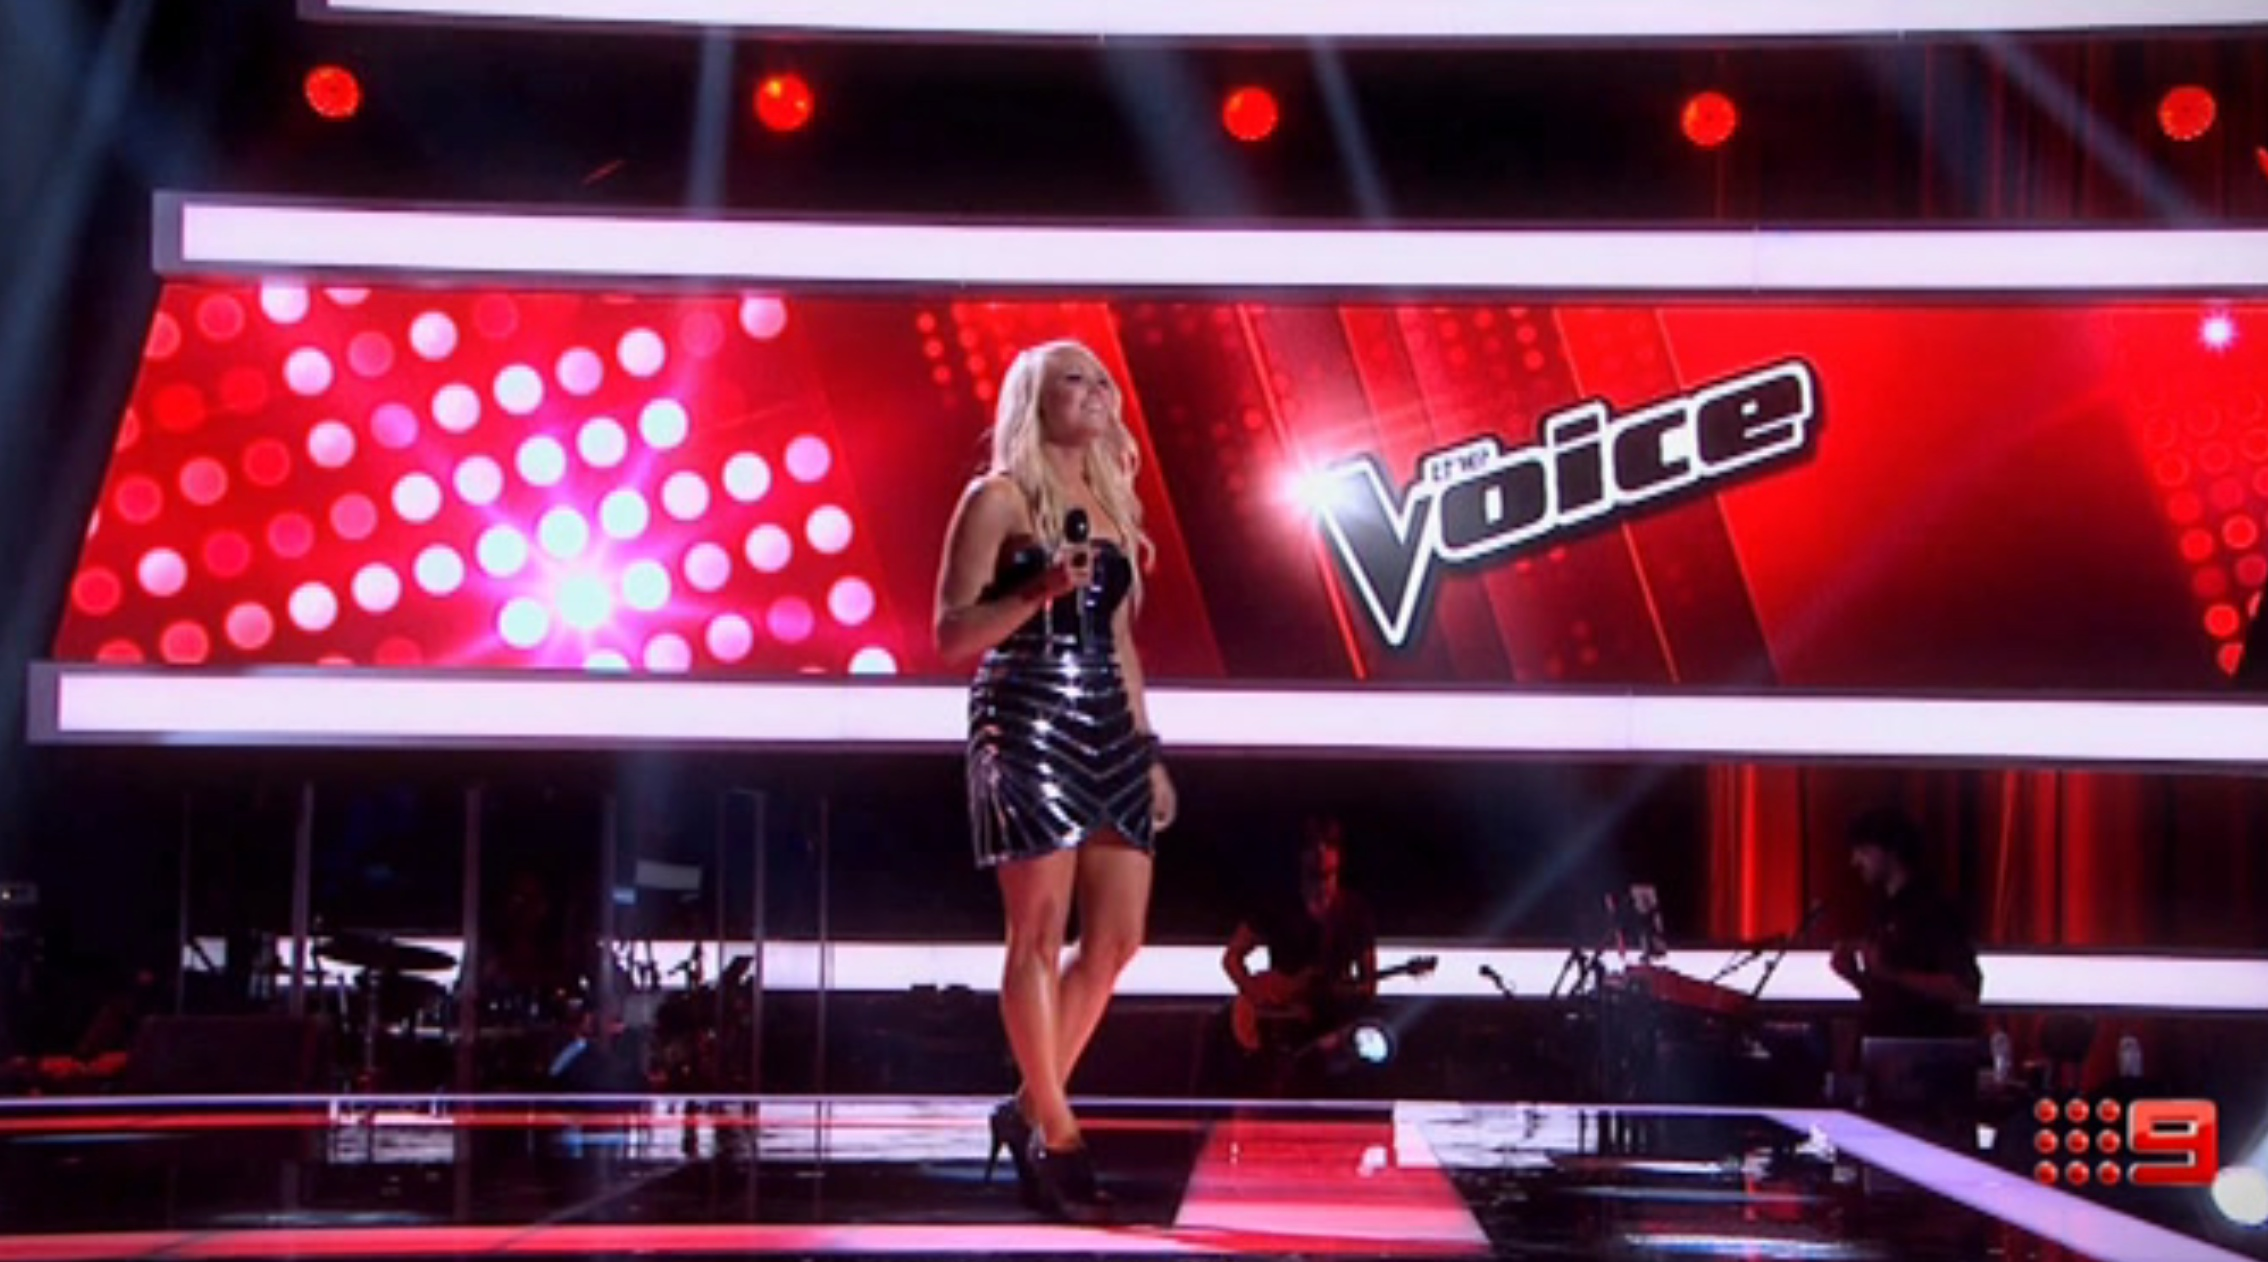 THE VOICE BLIND AUDITIONS BEGIN THIS SUNDAY 4TH MAY!